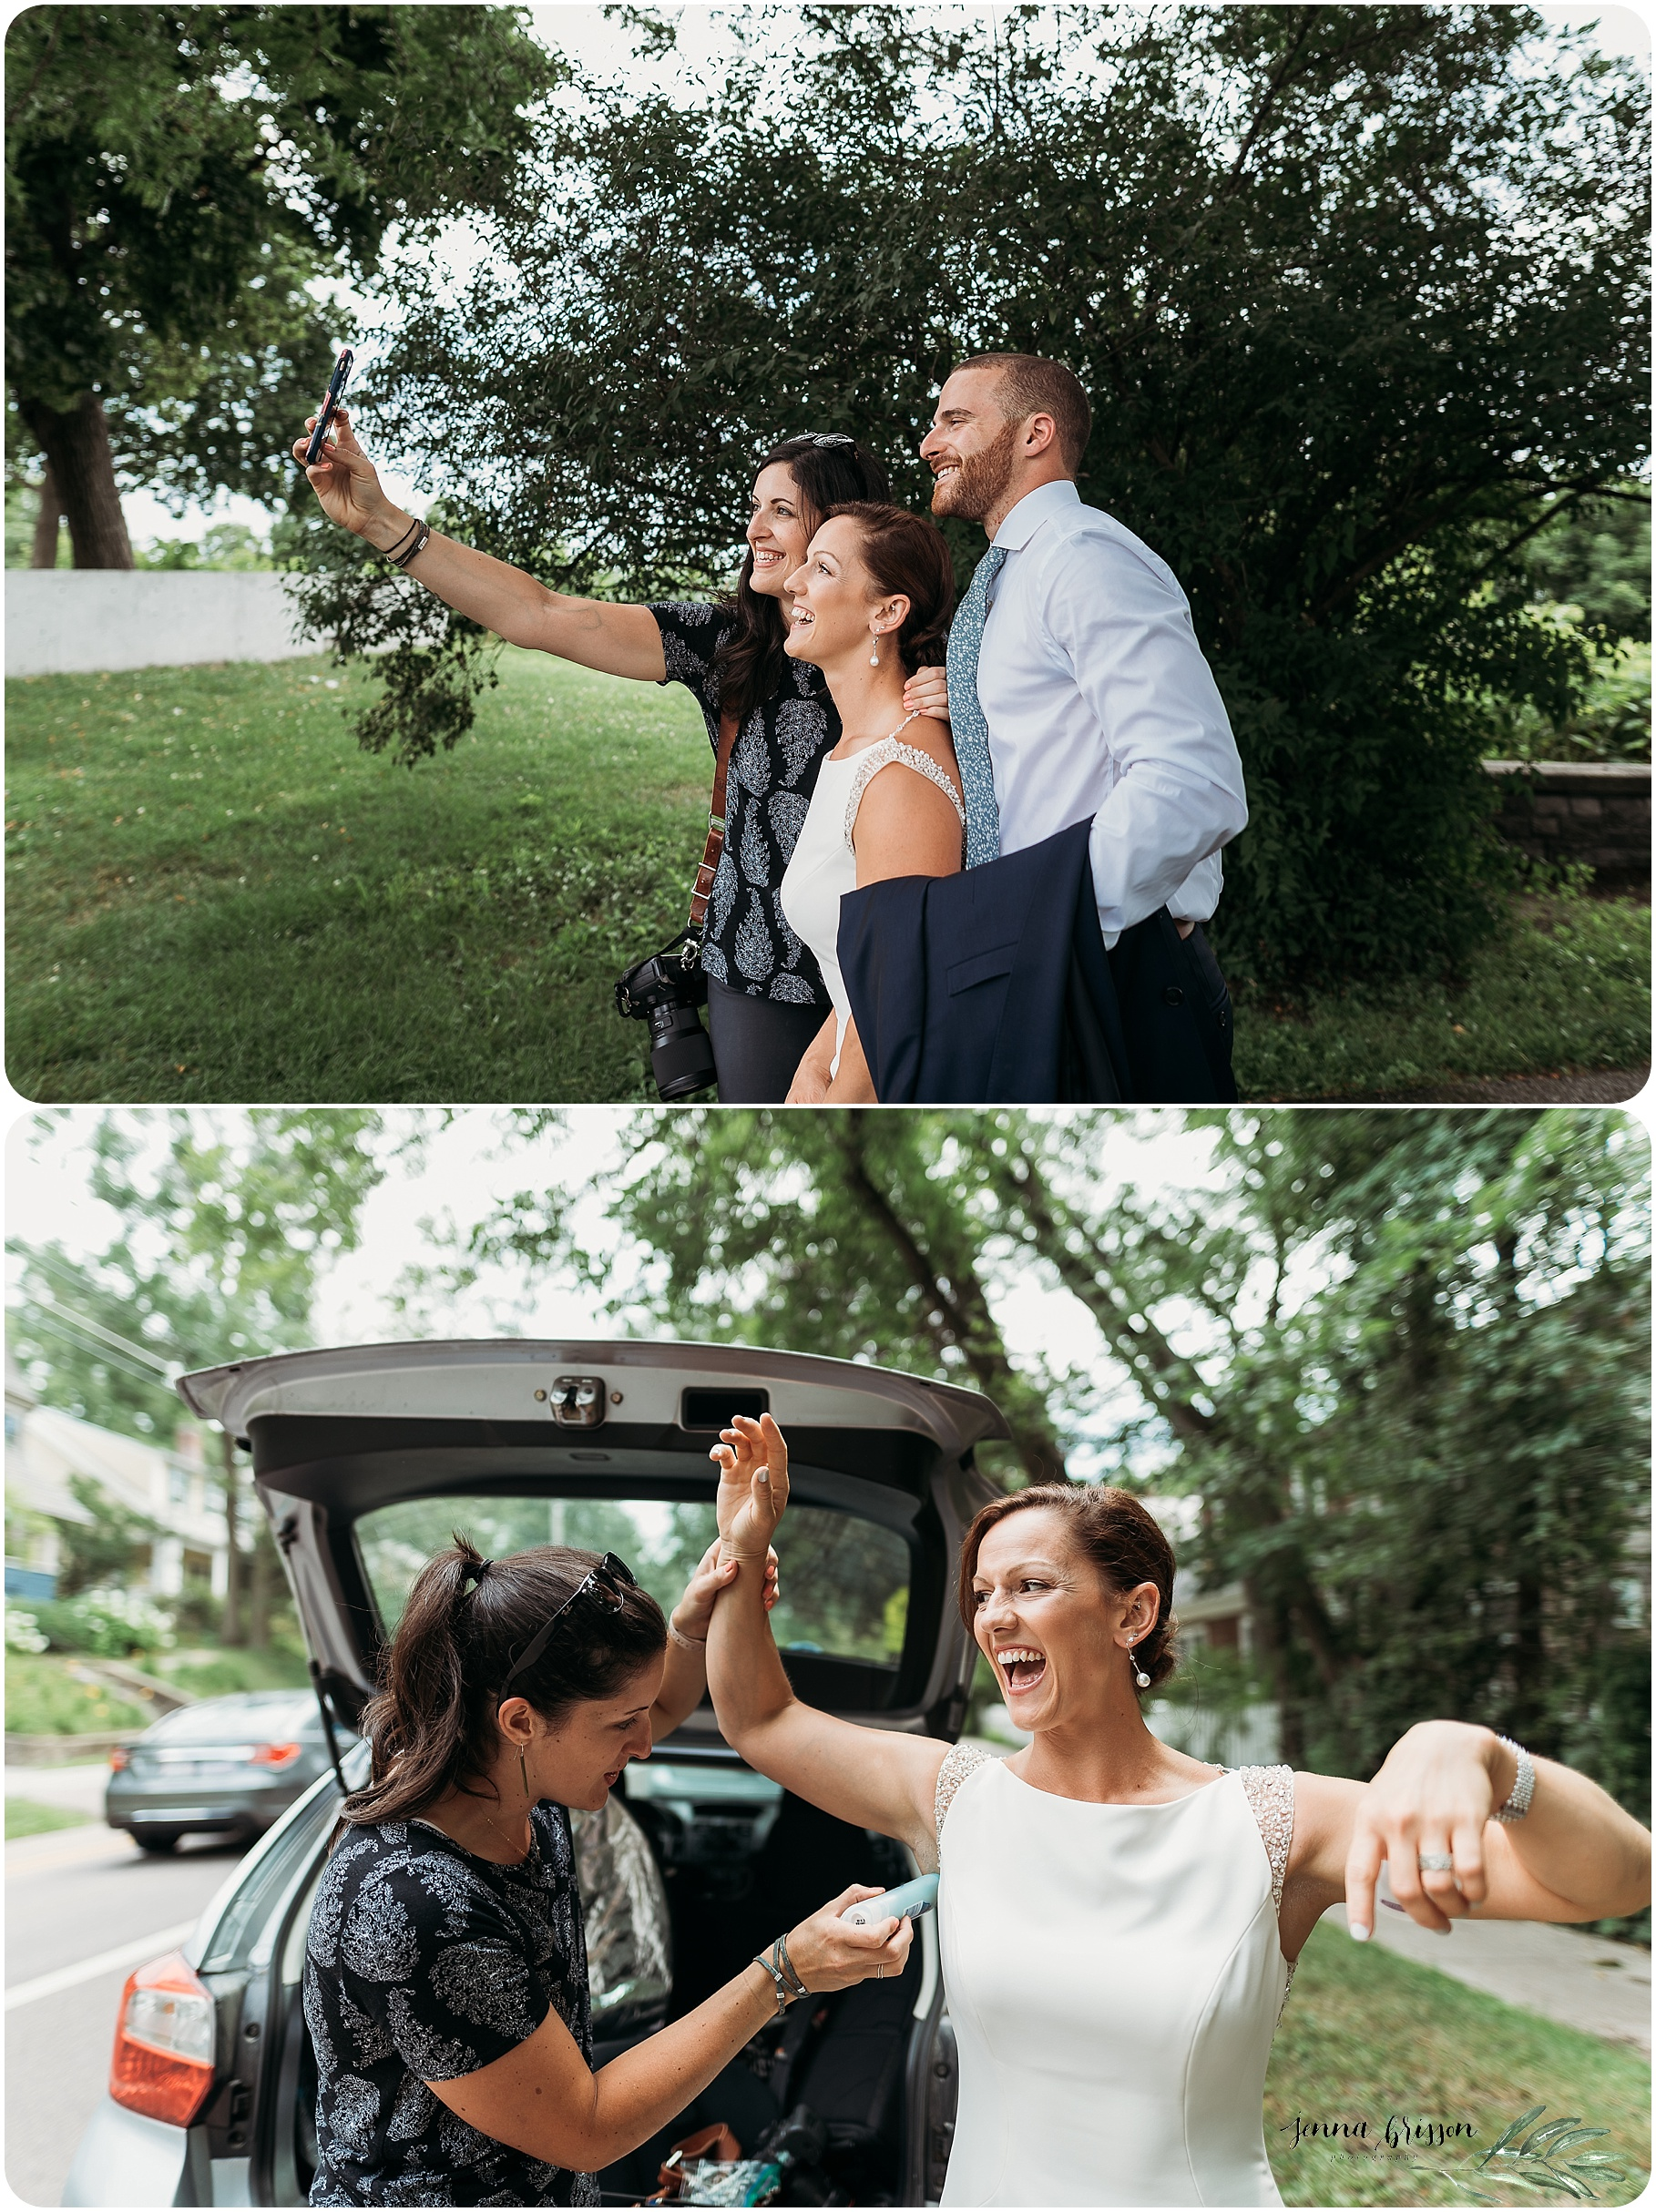 Selfie with the bride and groom -- and me coming in handy with some last minute deo help! Thanks to Arielle Thomas for the photos <3